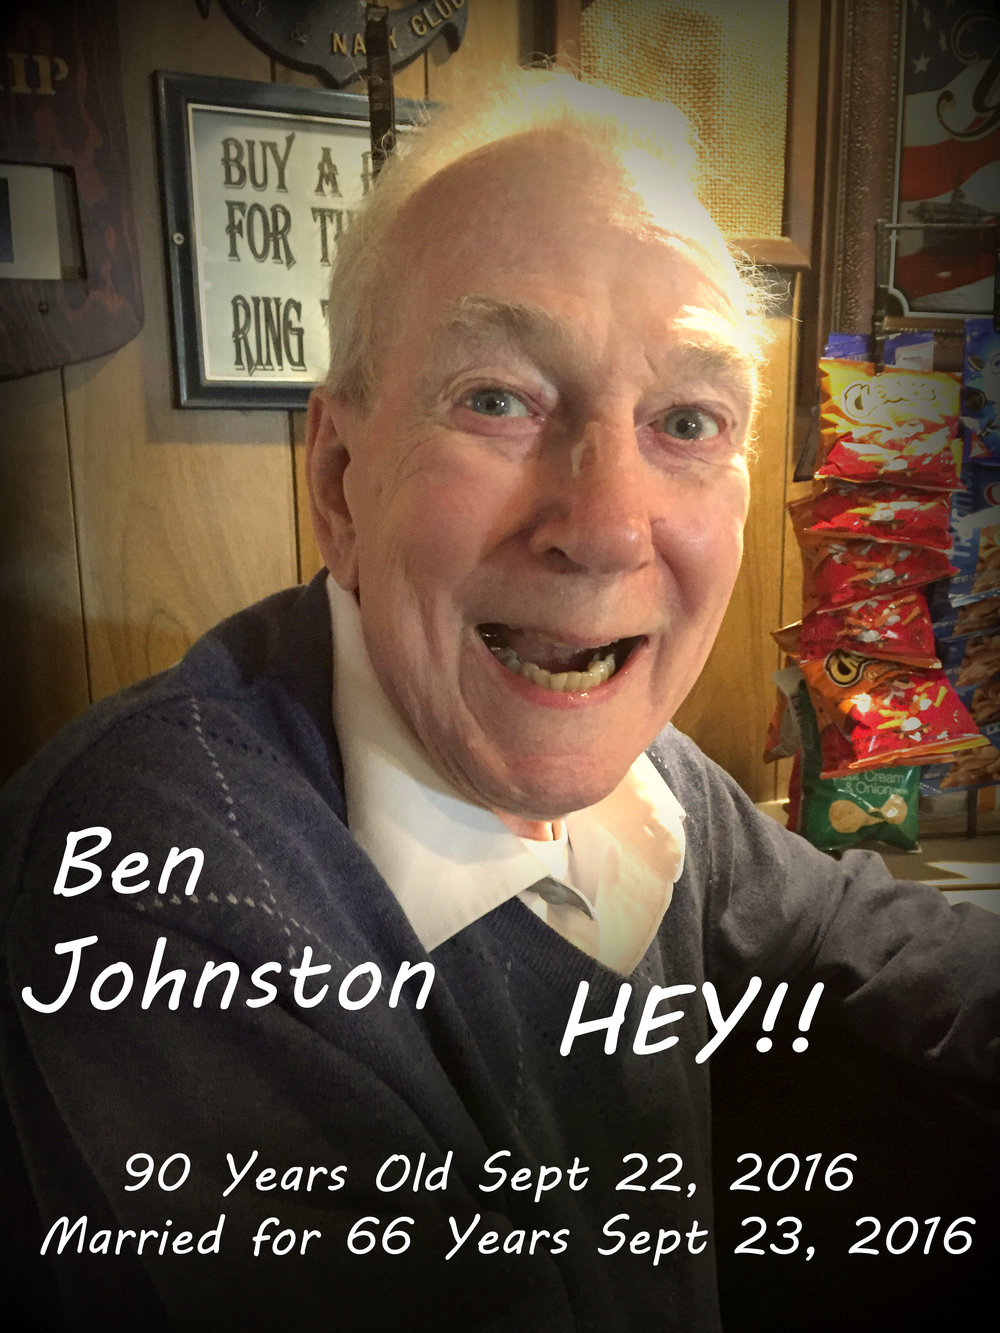 Past President Ben Johnson